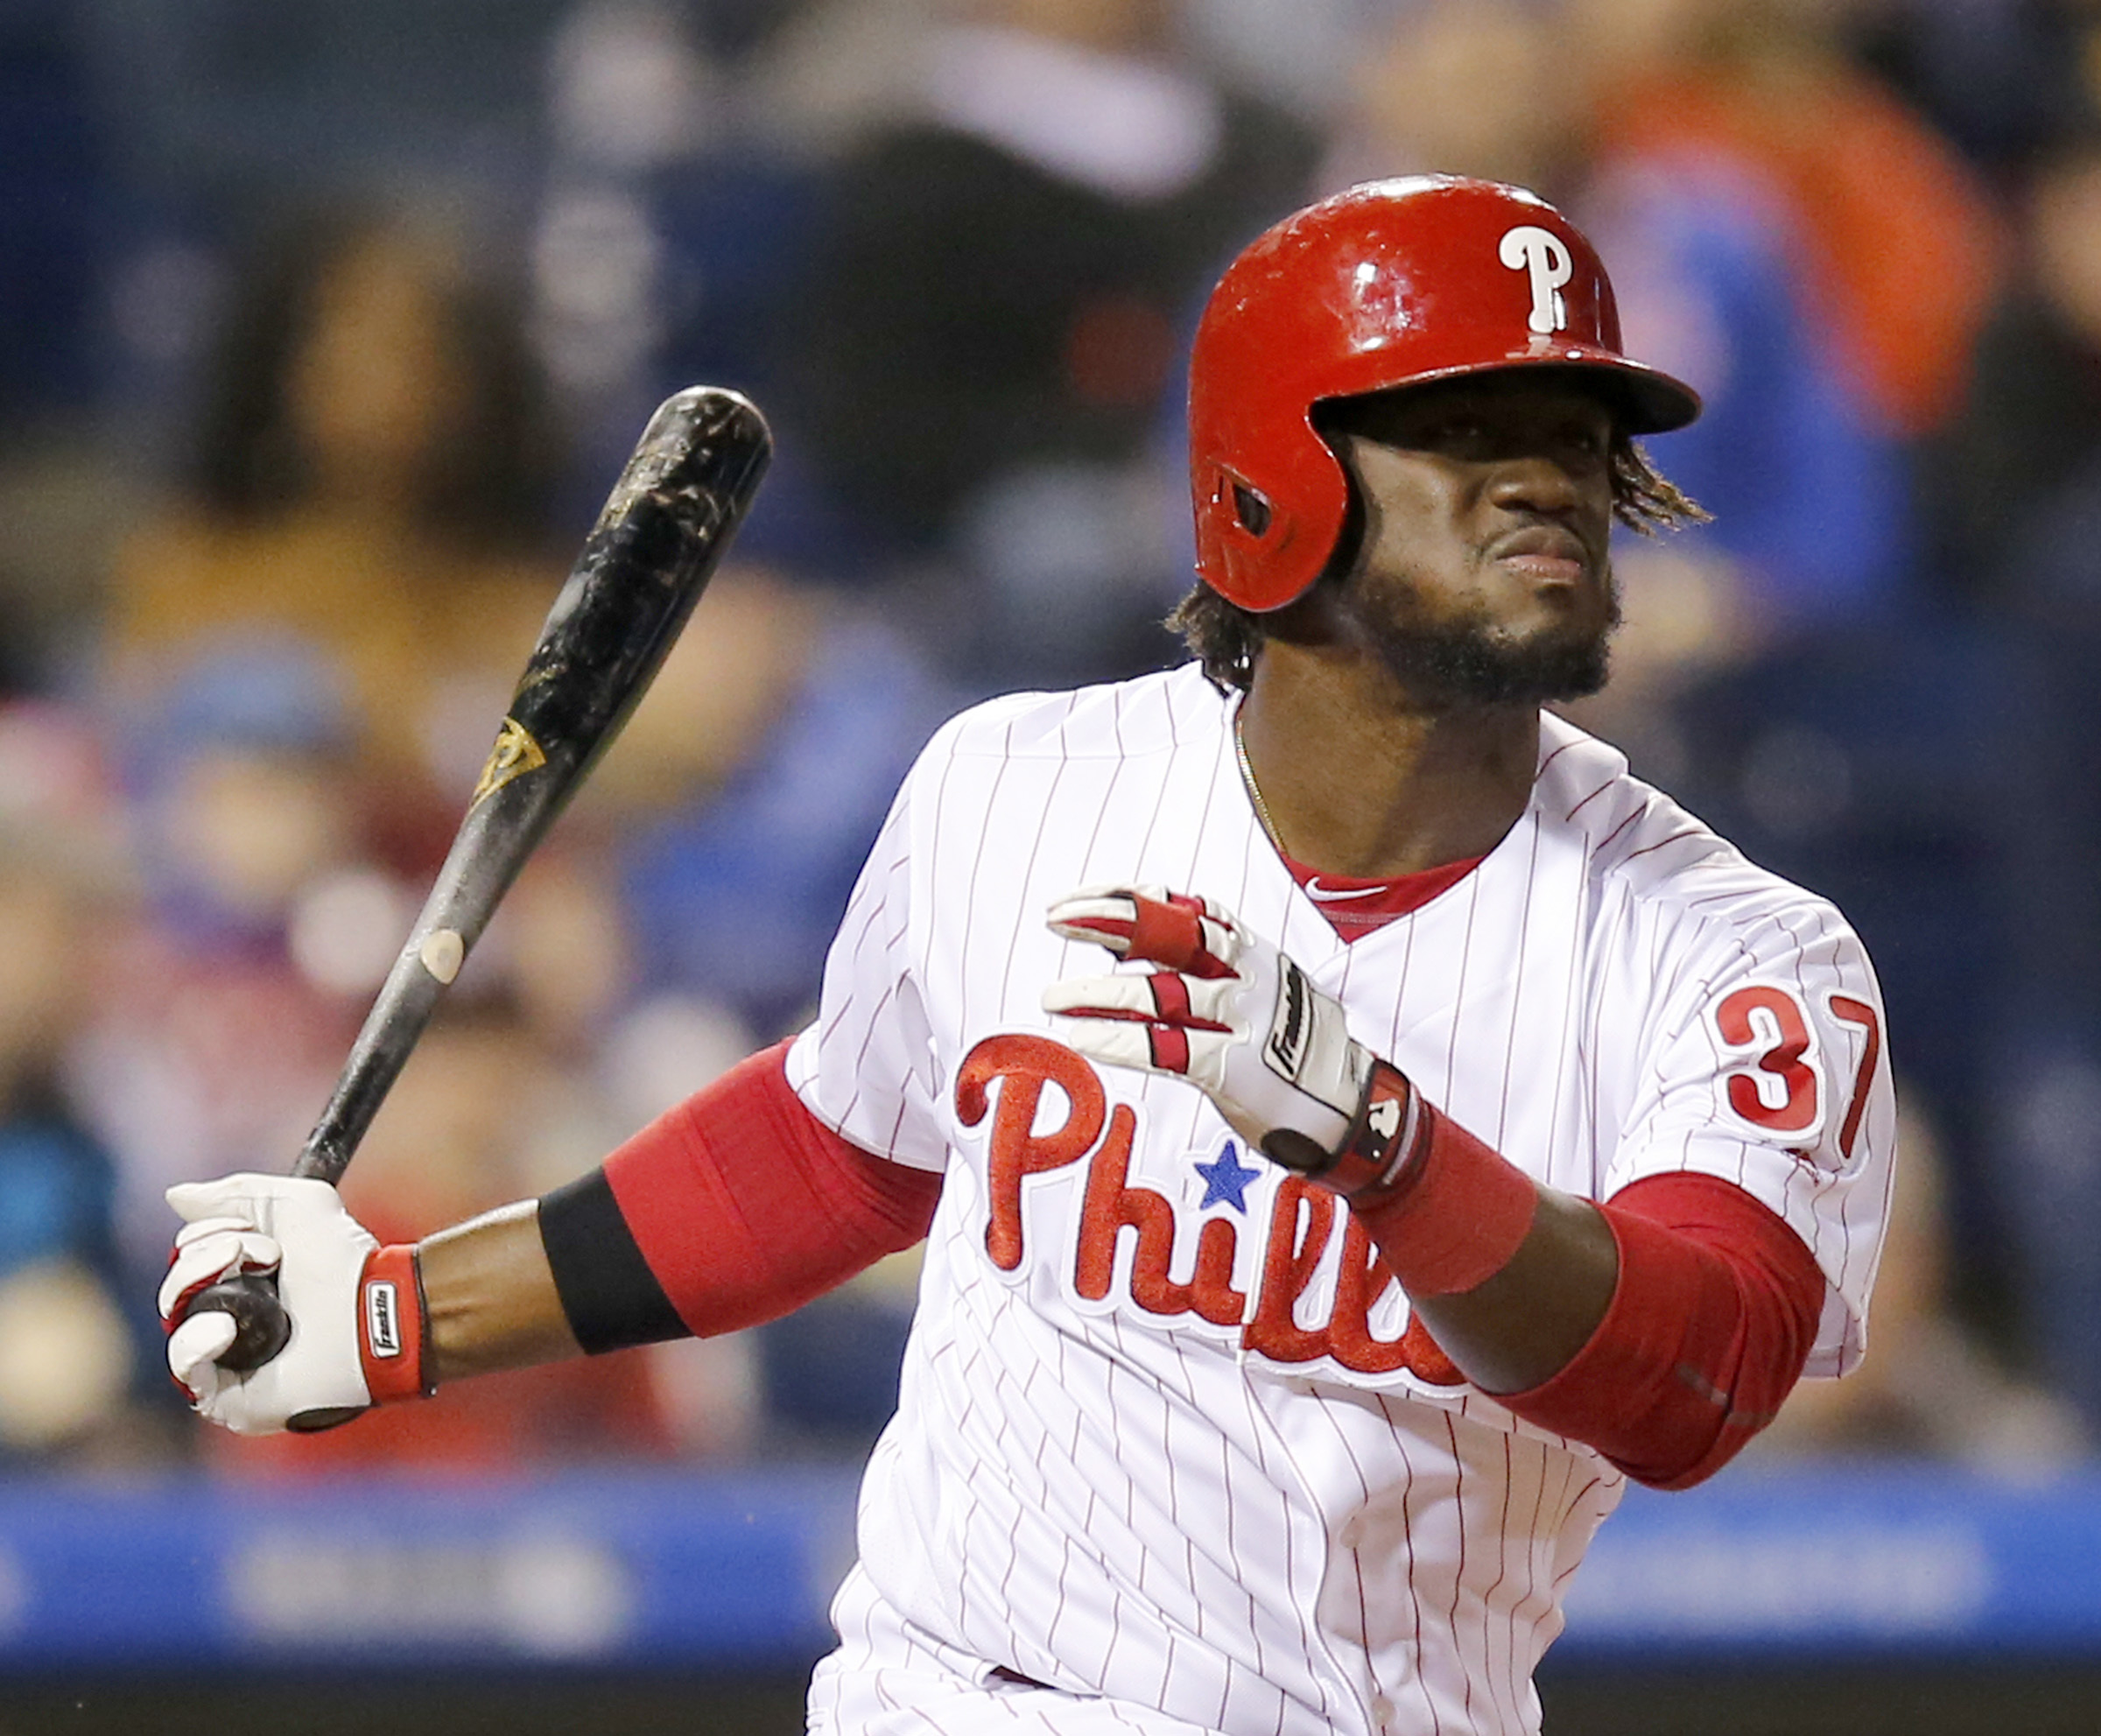 Odubel Herrera is expected to return from a hamstring injury when the Phillies open a series Monday against the New York Mets at CitiField. YONG KIM / Staff Photographer.